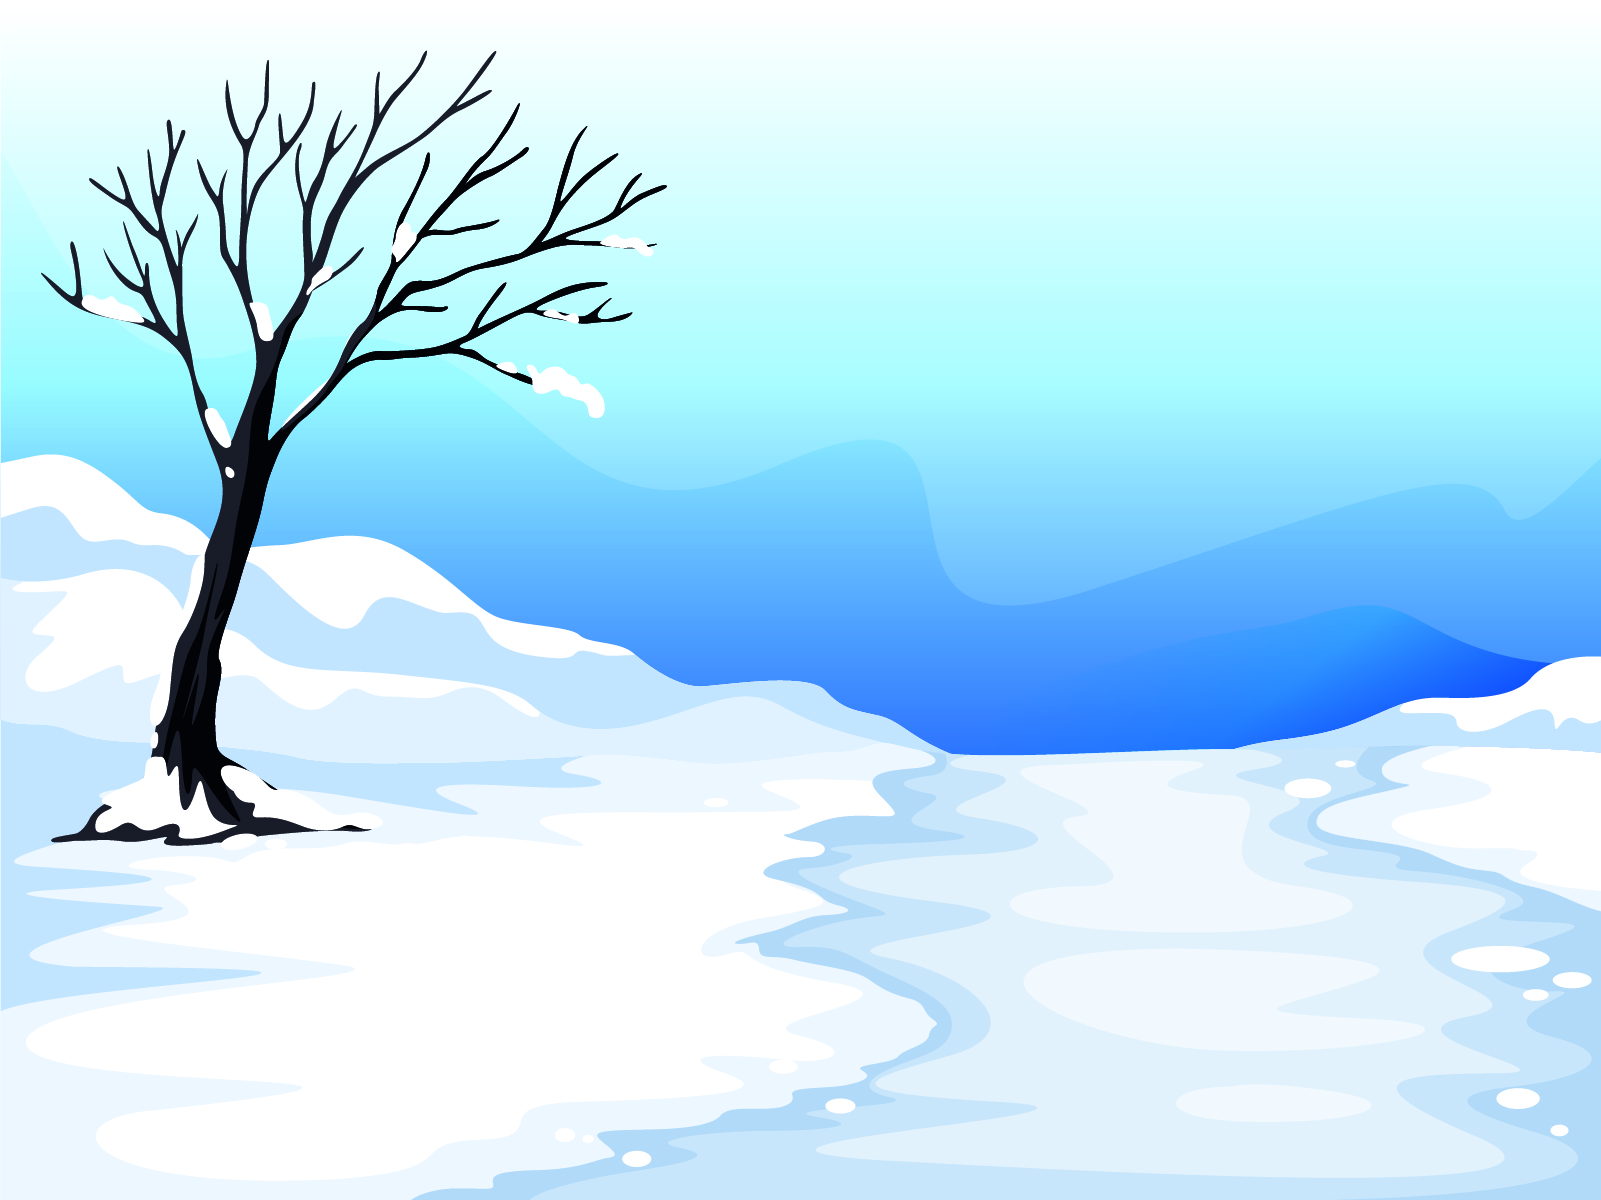 Snow And Tree Illustration Ppt Backgroun-Snow And Tree Illustration Ppt Backgrounds 3d Blue Design-7